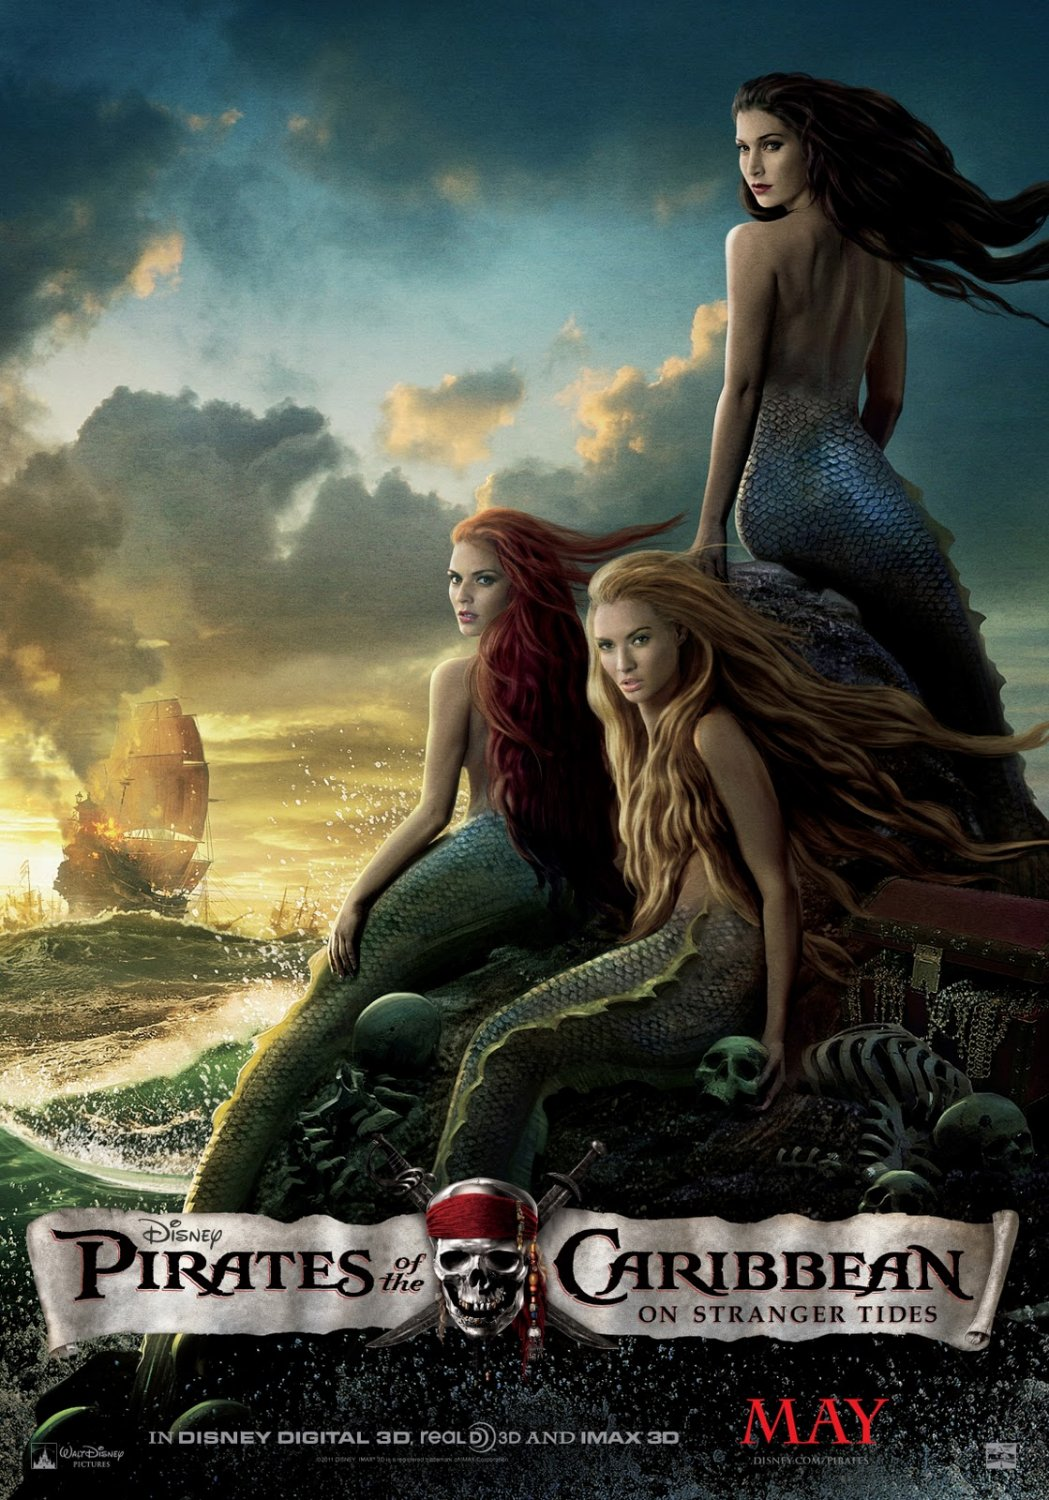 http://collider.com/wp-content/uploads/pirates_of_the_caribbean_on_stranger_tides_mermaids-movie-posterjpg.jpg